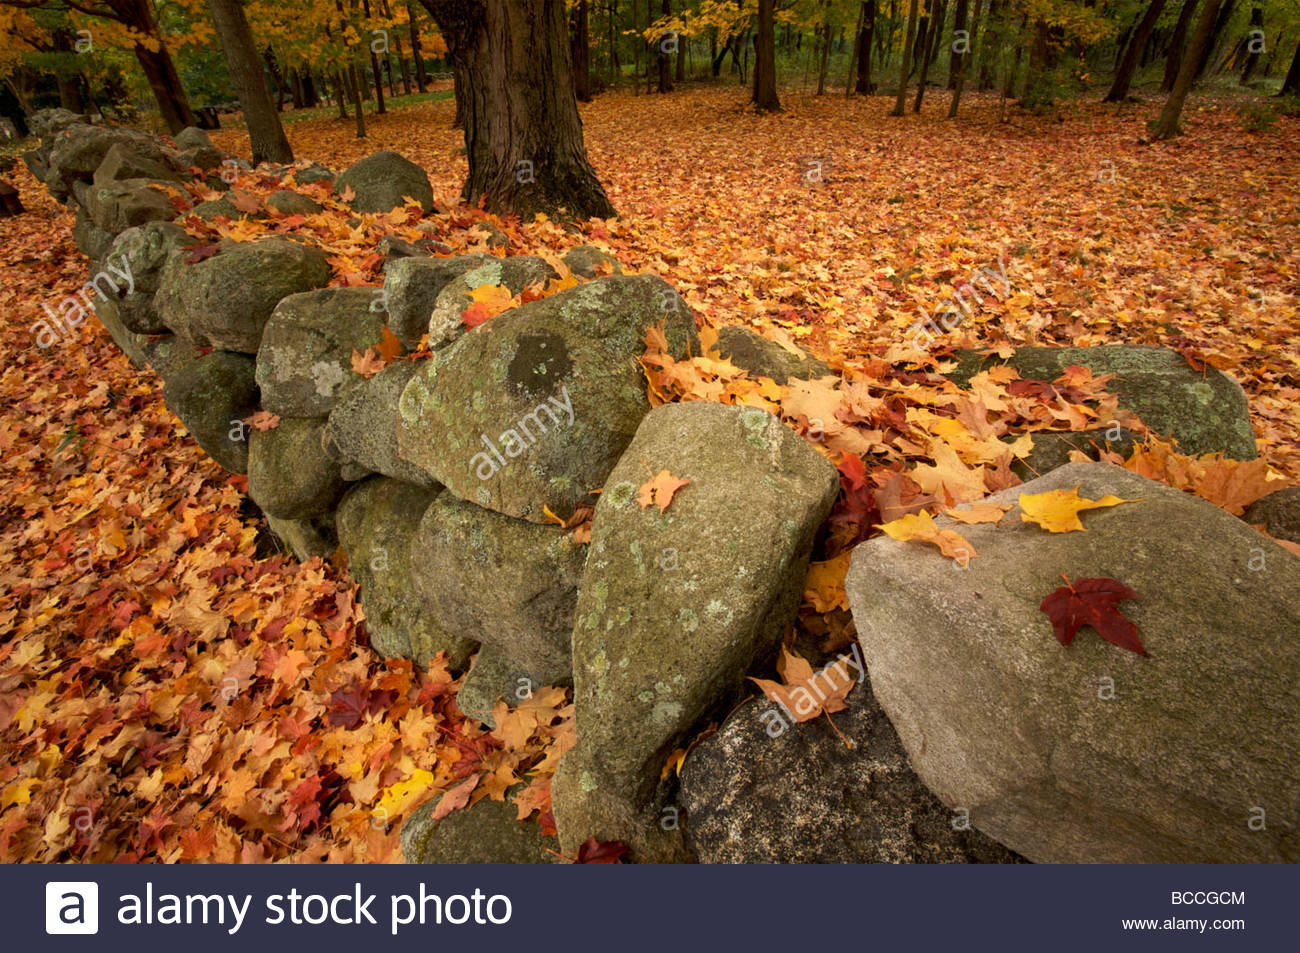 Fallen autumn sugar maple leaves on a stonewall. - Stock Image